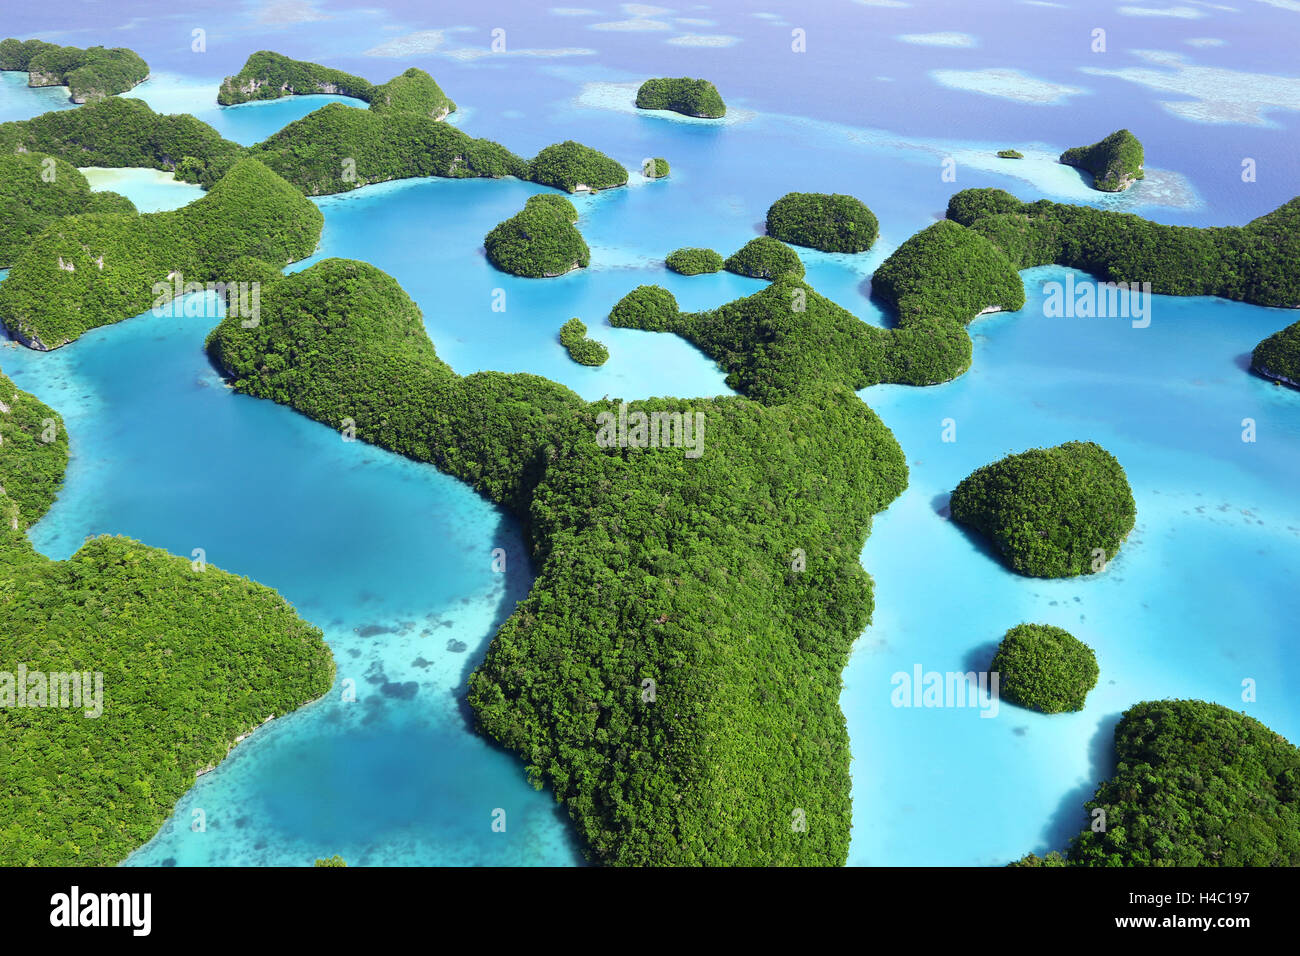 Aerial view of the archipelago of Seventy Islands, Republic of Palau, Micronesia, Pacific Ocean - Stock Image